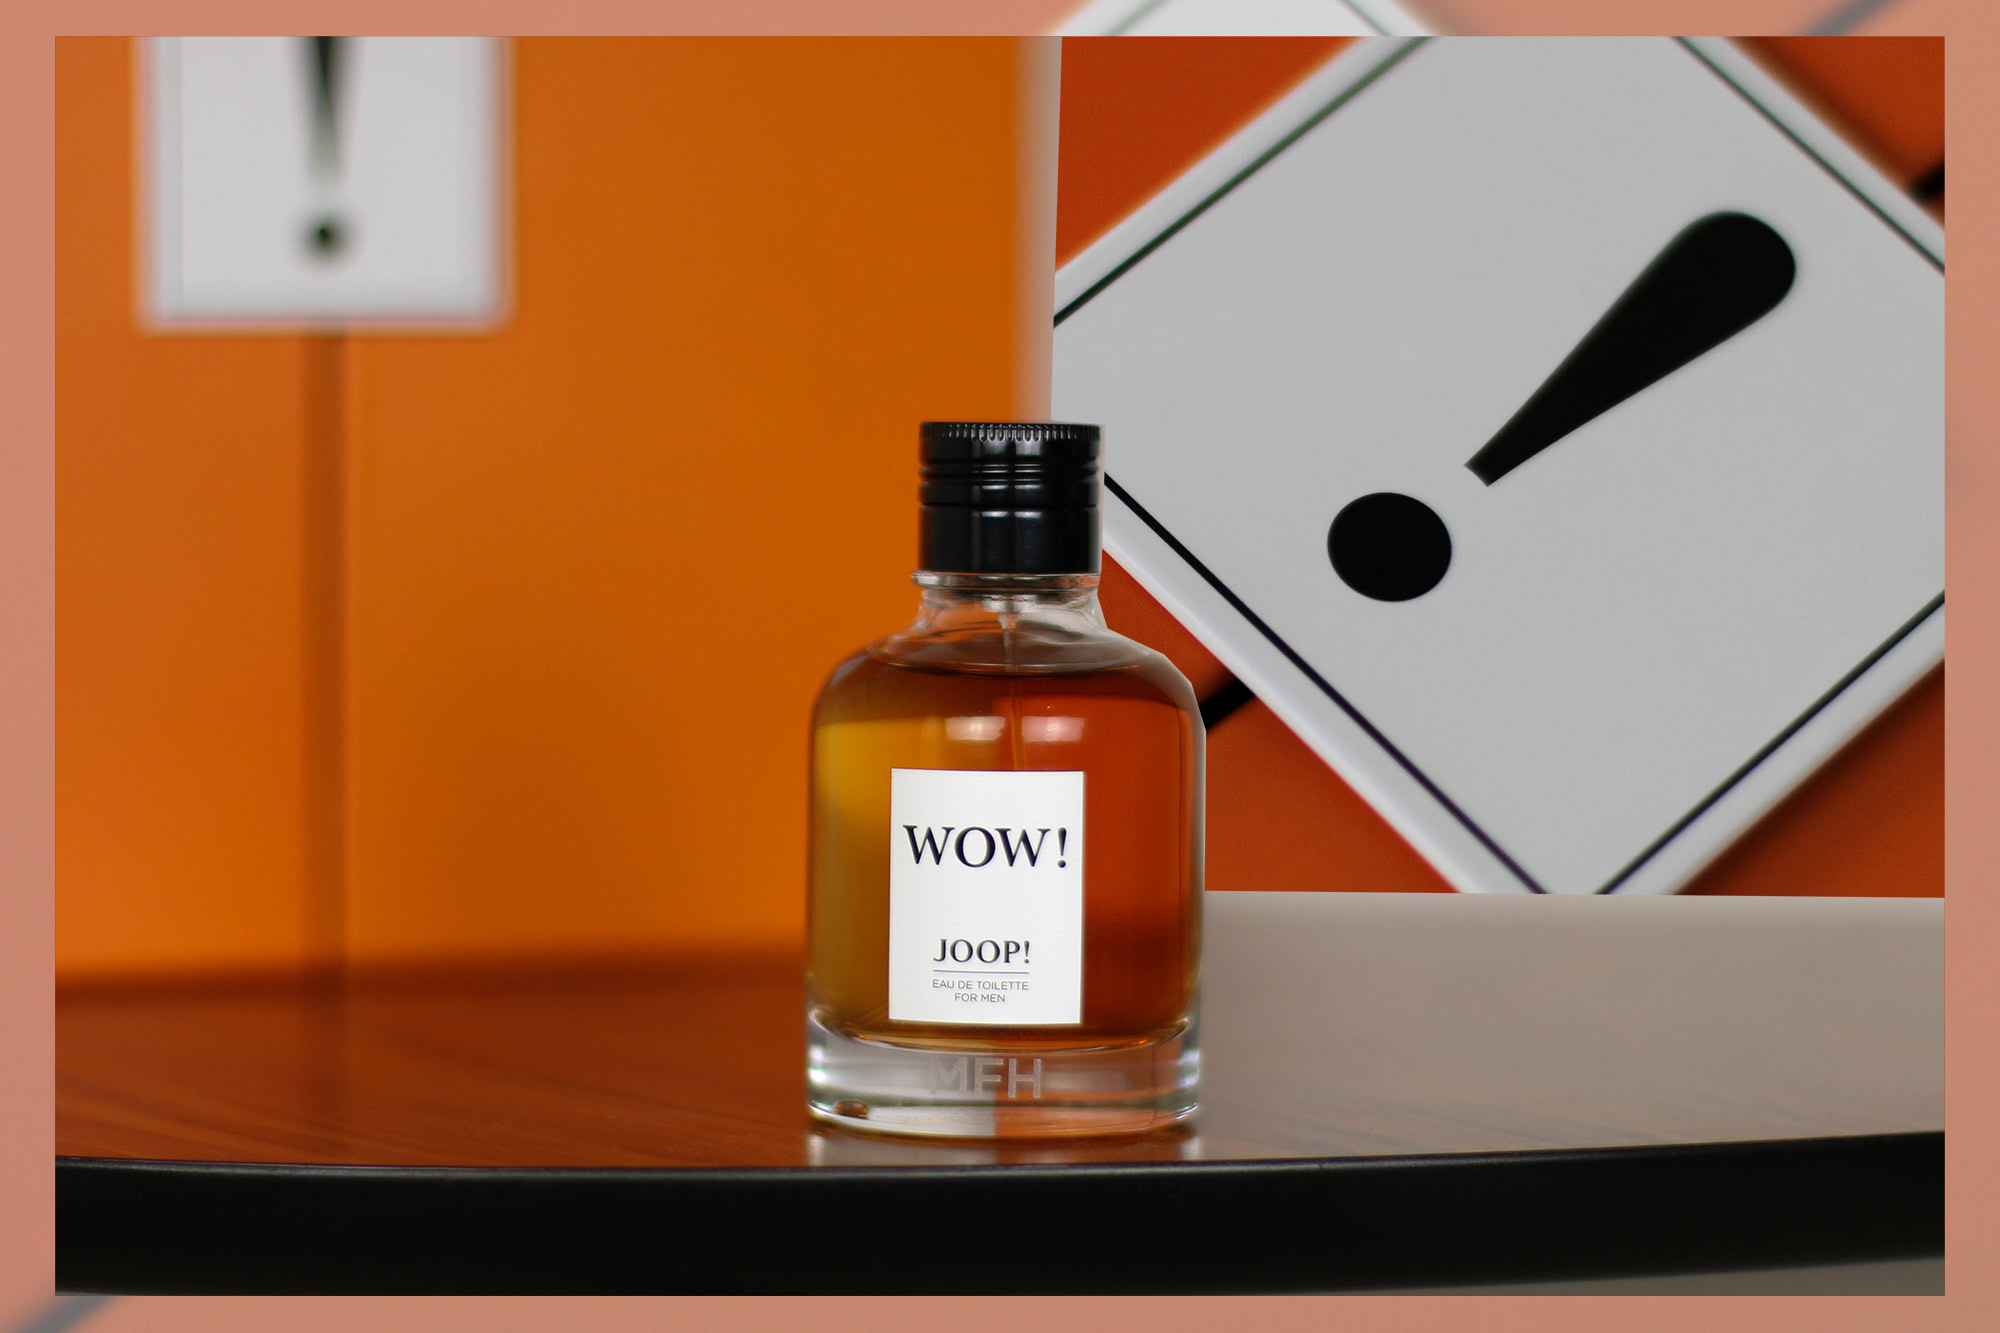 Joop-wow-review-orange-bottle-man-for-himself